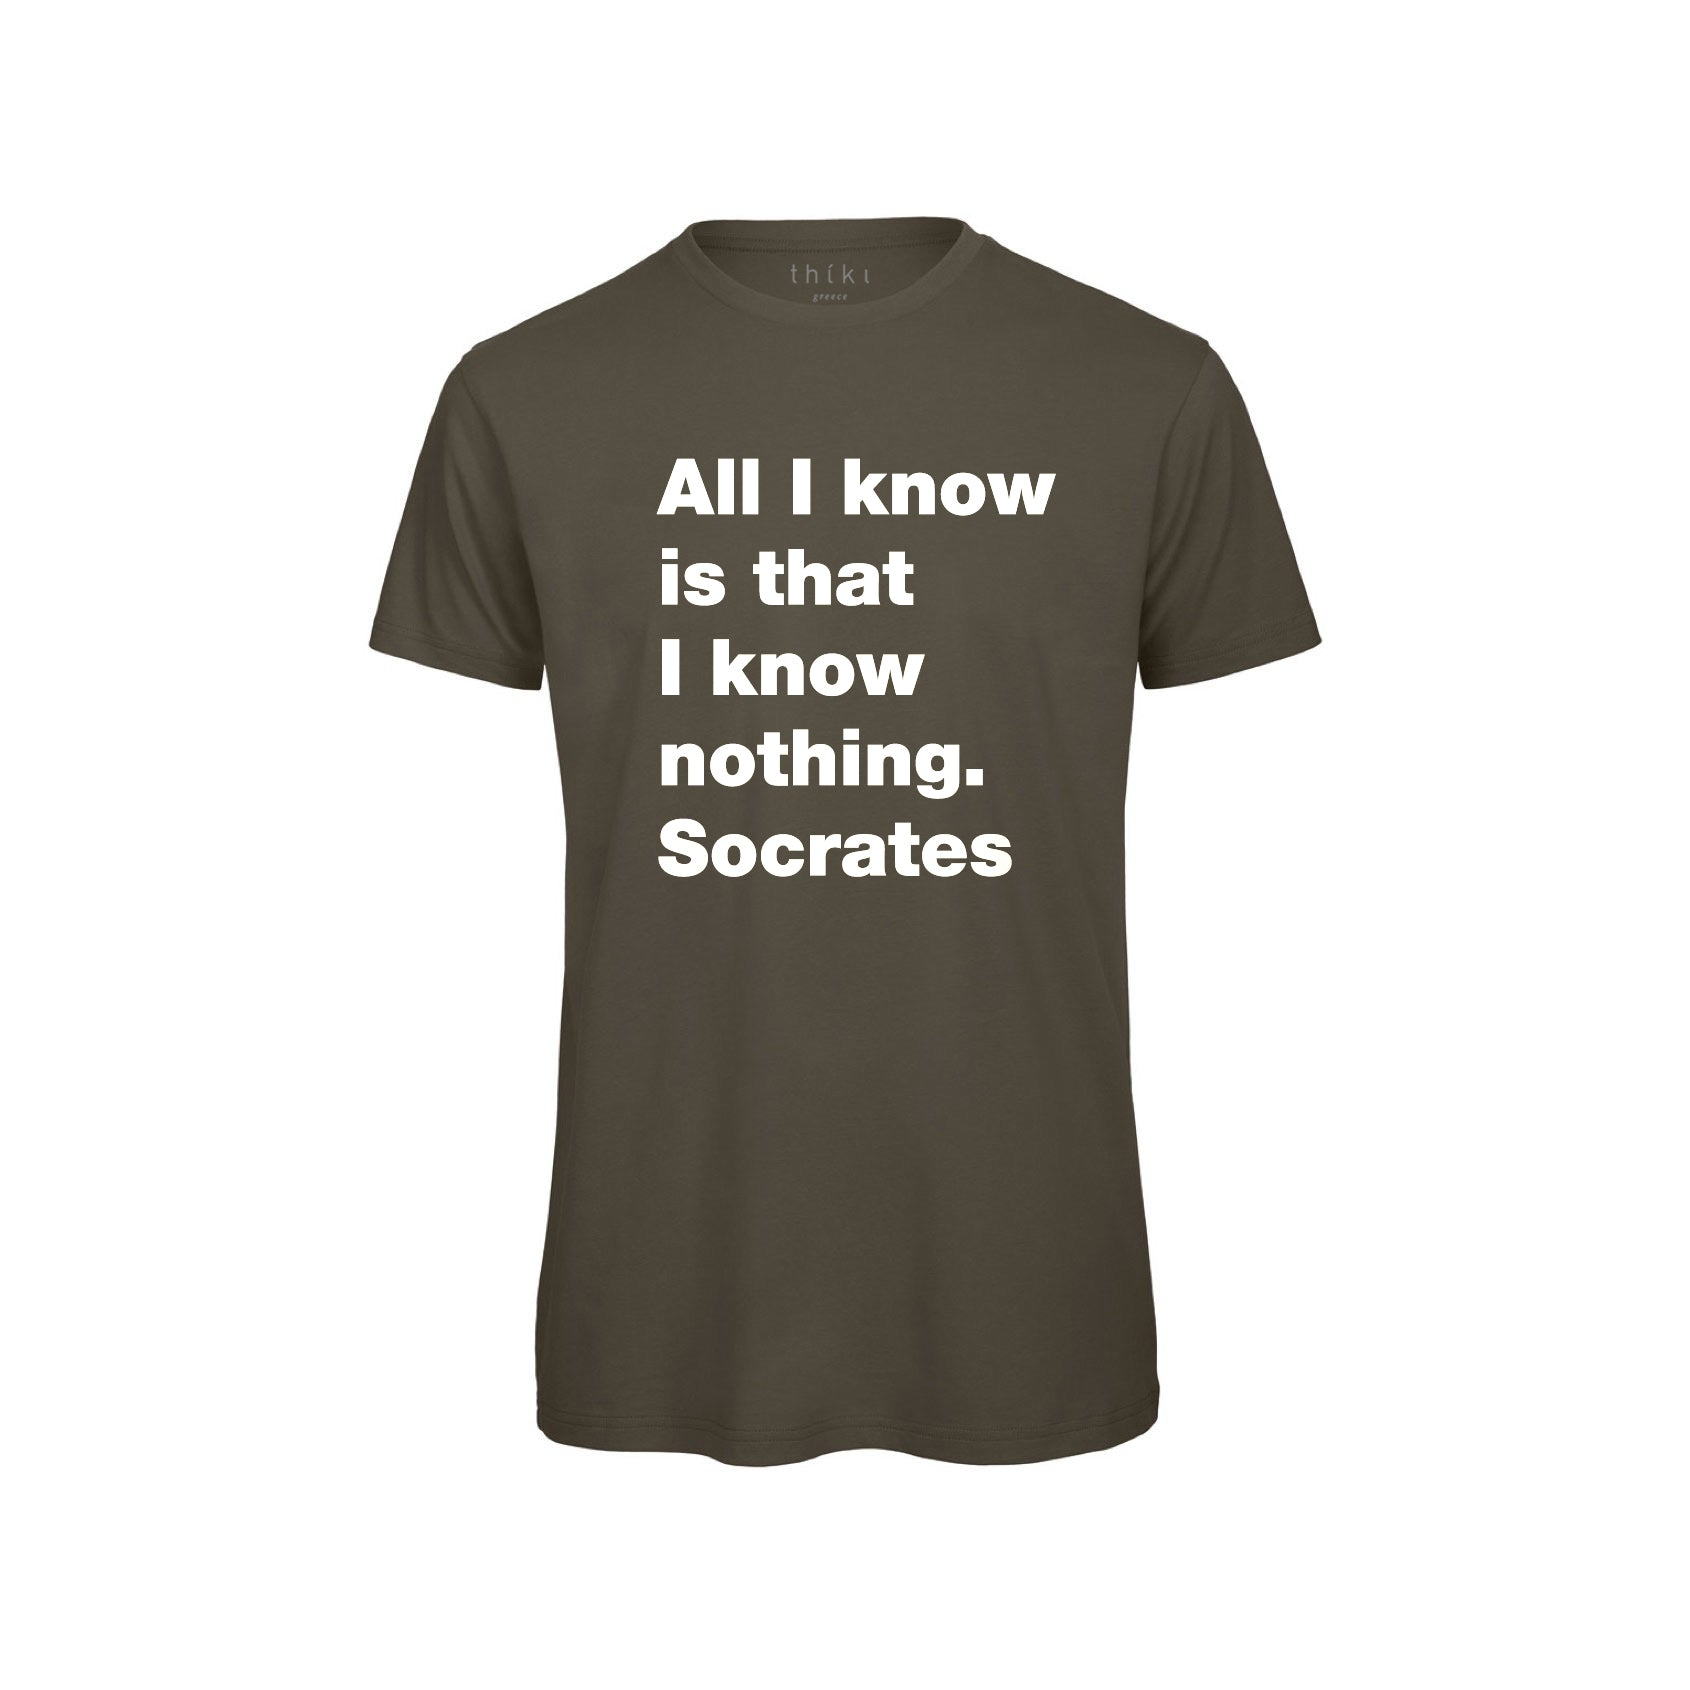 All I know. Socrates khaki t-shirt